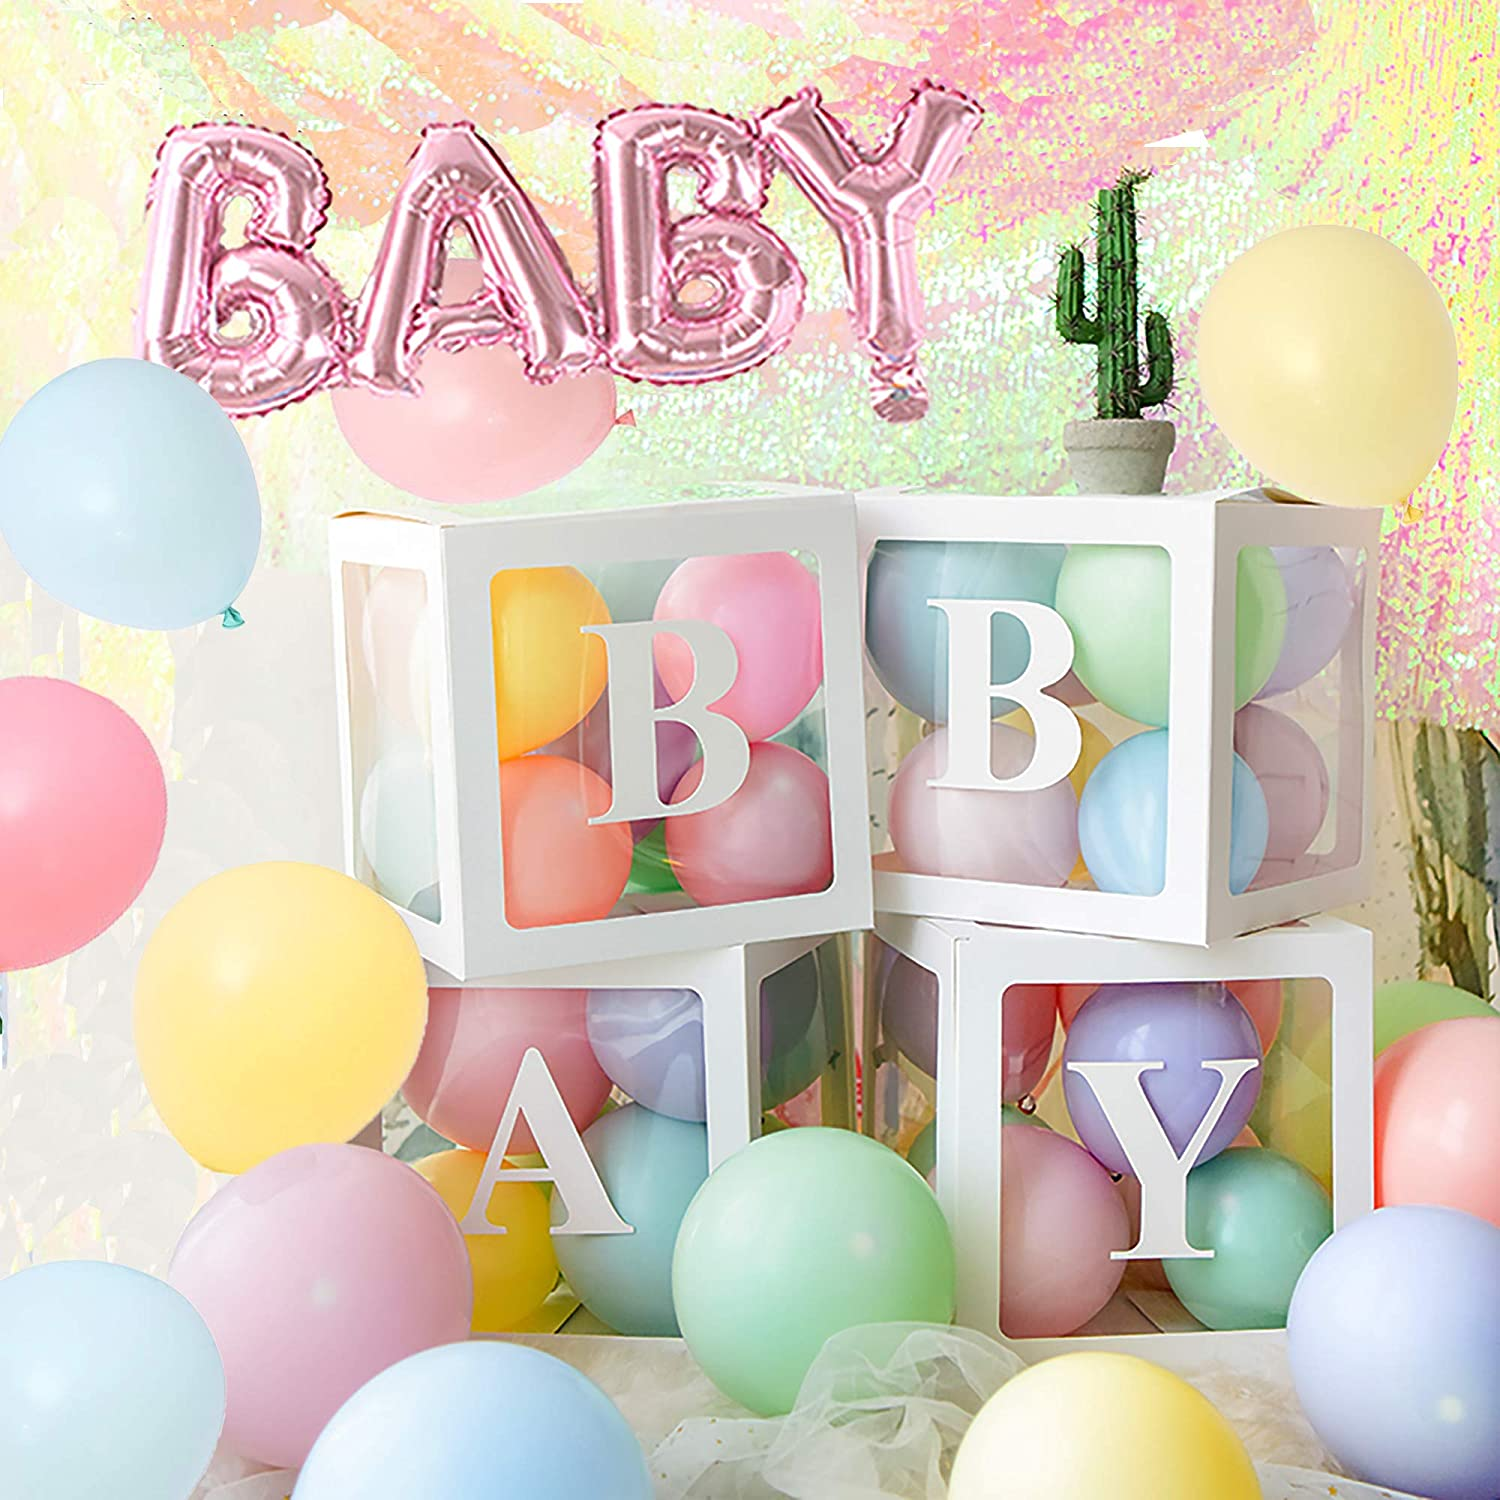 Baby Shower Decoration Balloon Box - 4 pcs Transparent Balloons Blocks with Letter BABY with balloons, centerpieces party favors for baby girl boy birthday gender reveal backdrop (macaron)